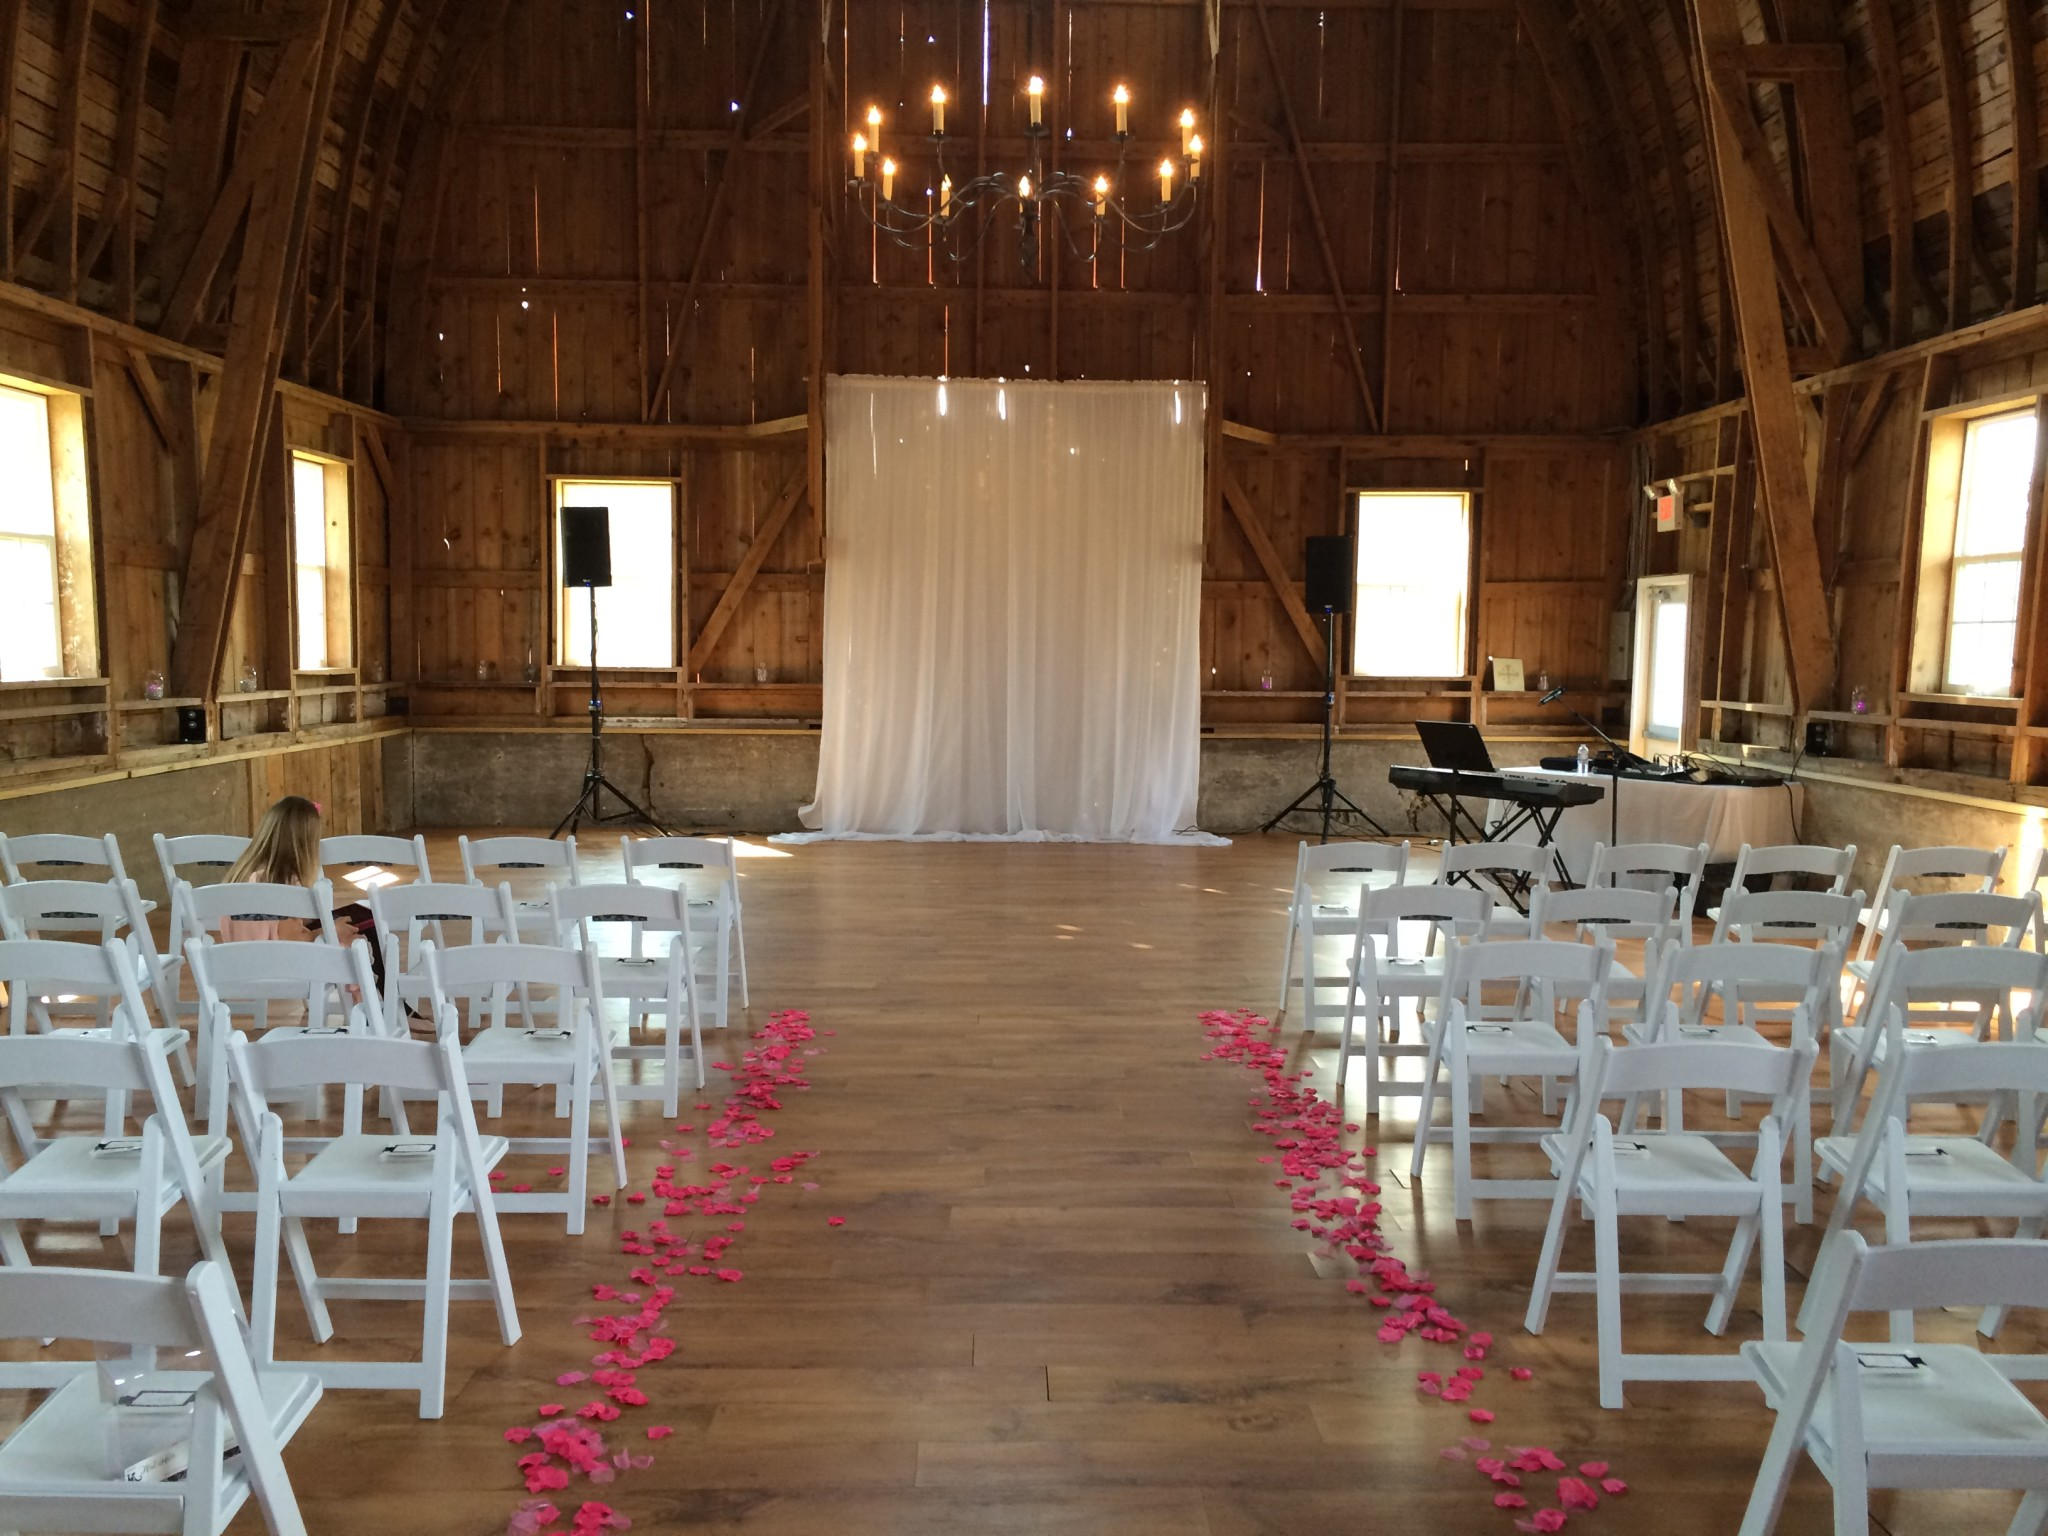 Ceremony Music Recommendations: Seating Music